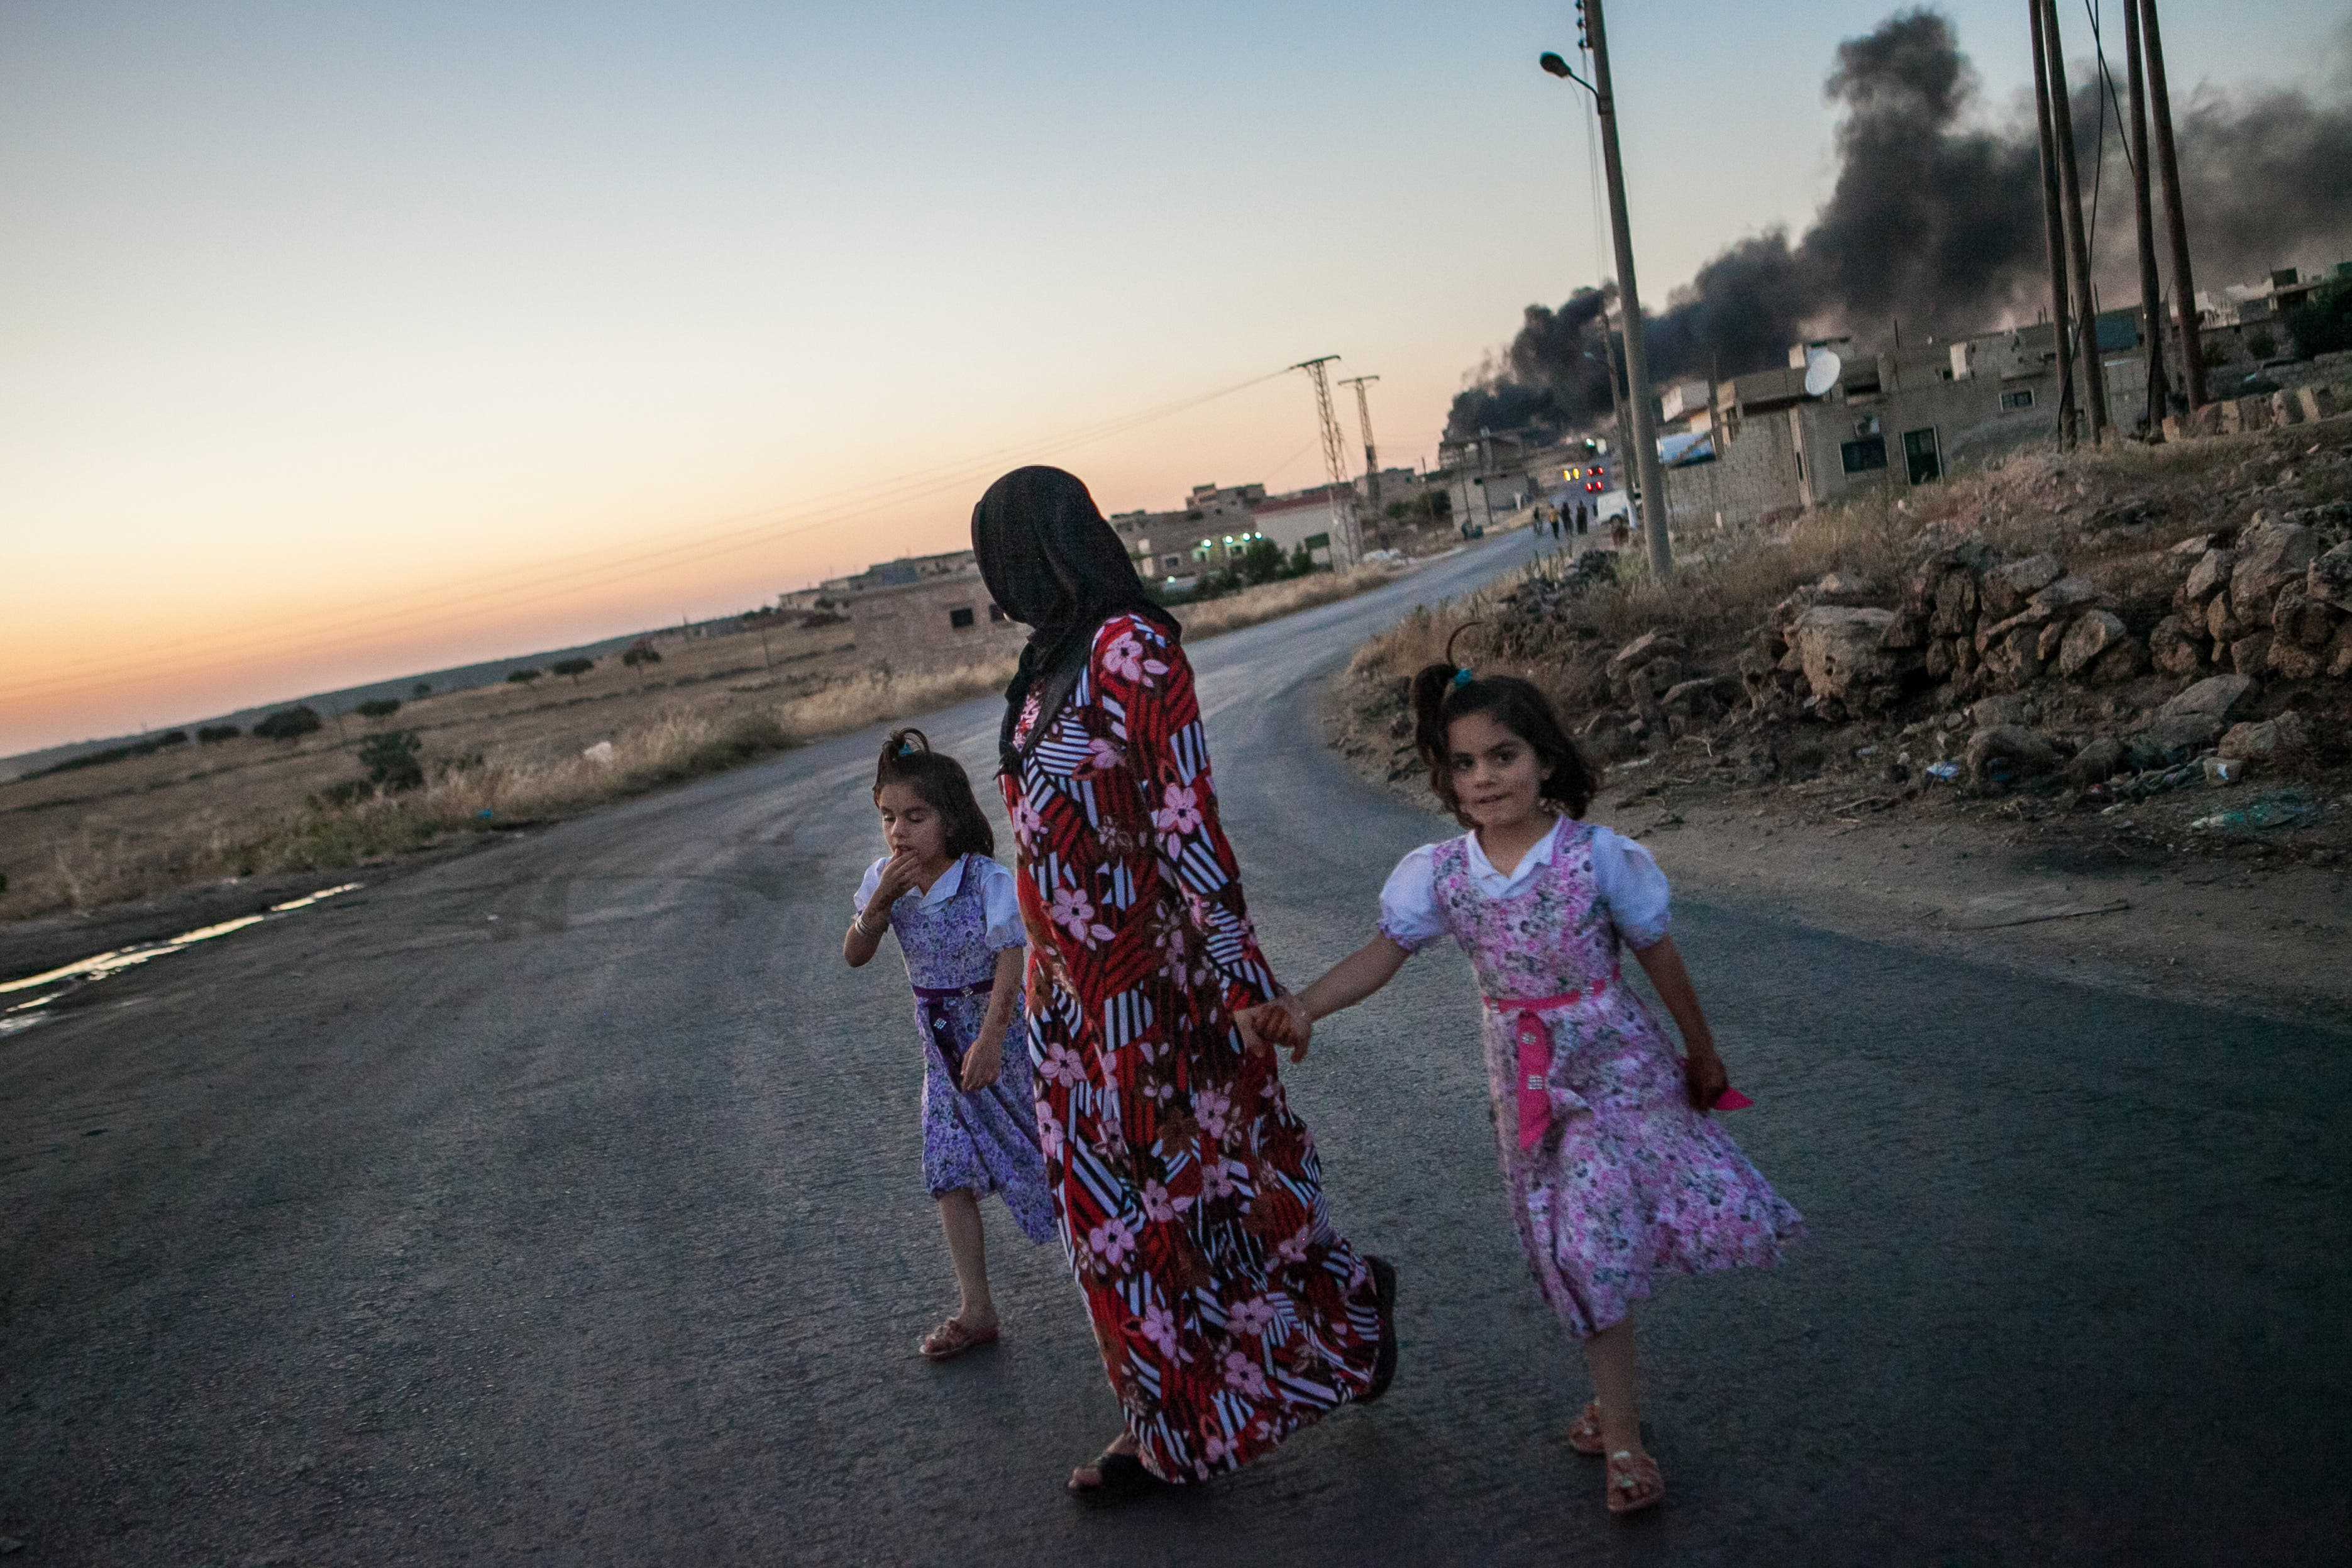 Syrian girls walk with their mother as she turns to look at smoke billowing from three shells dropped on the town of Al-Bara in the northwestern province of Idlib. (Source AFP/DANIEL LEAL-OLIVAS)